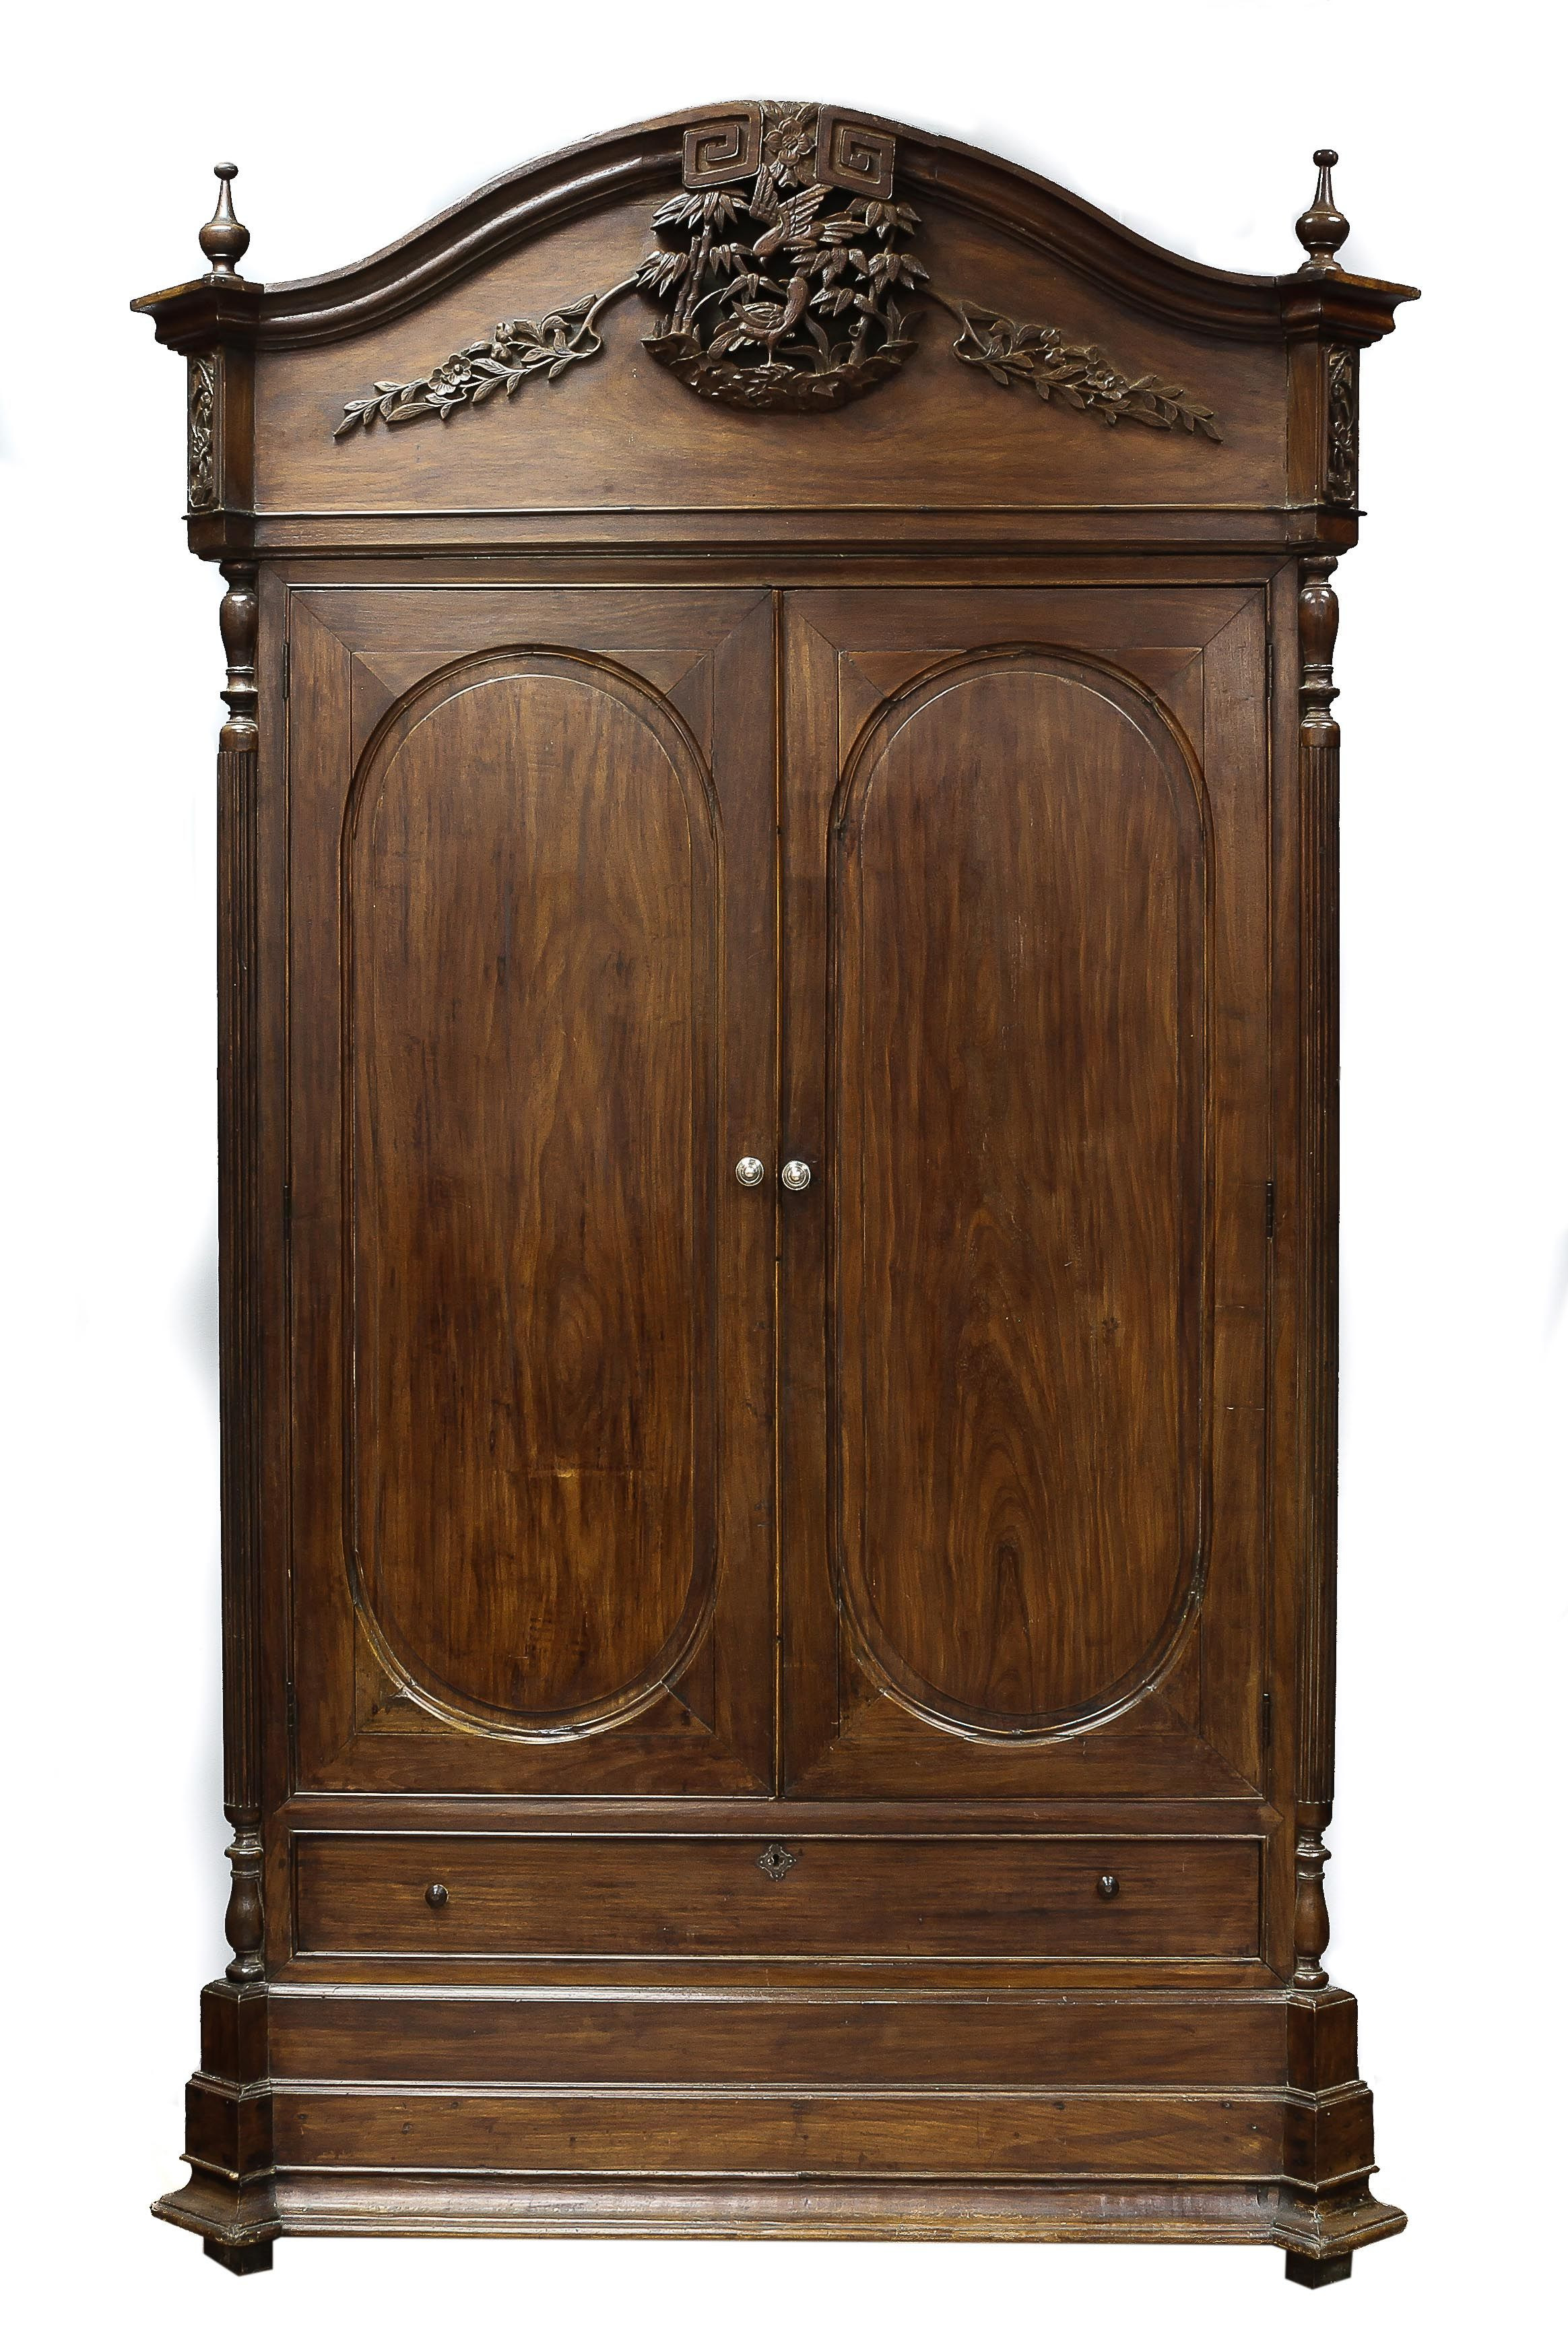 Antique Furniture for Sale Philippines Awesome Pin On Antique Filipino Furniture